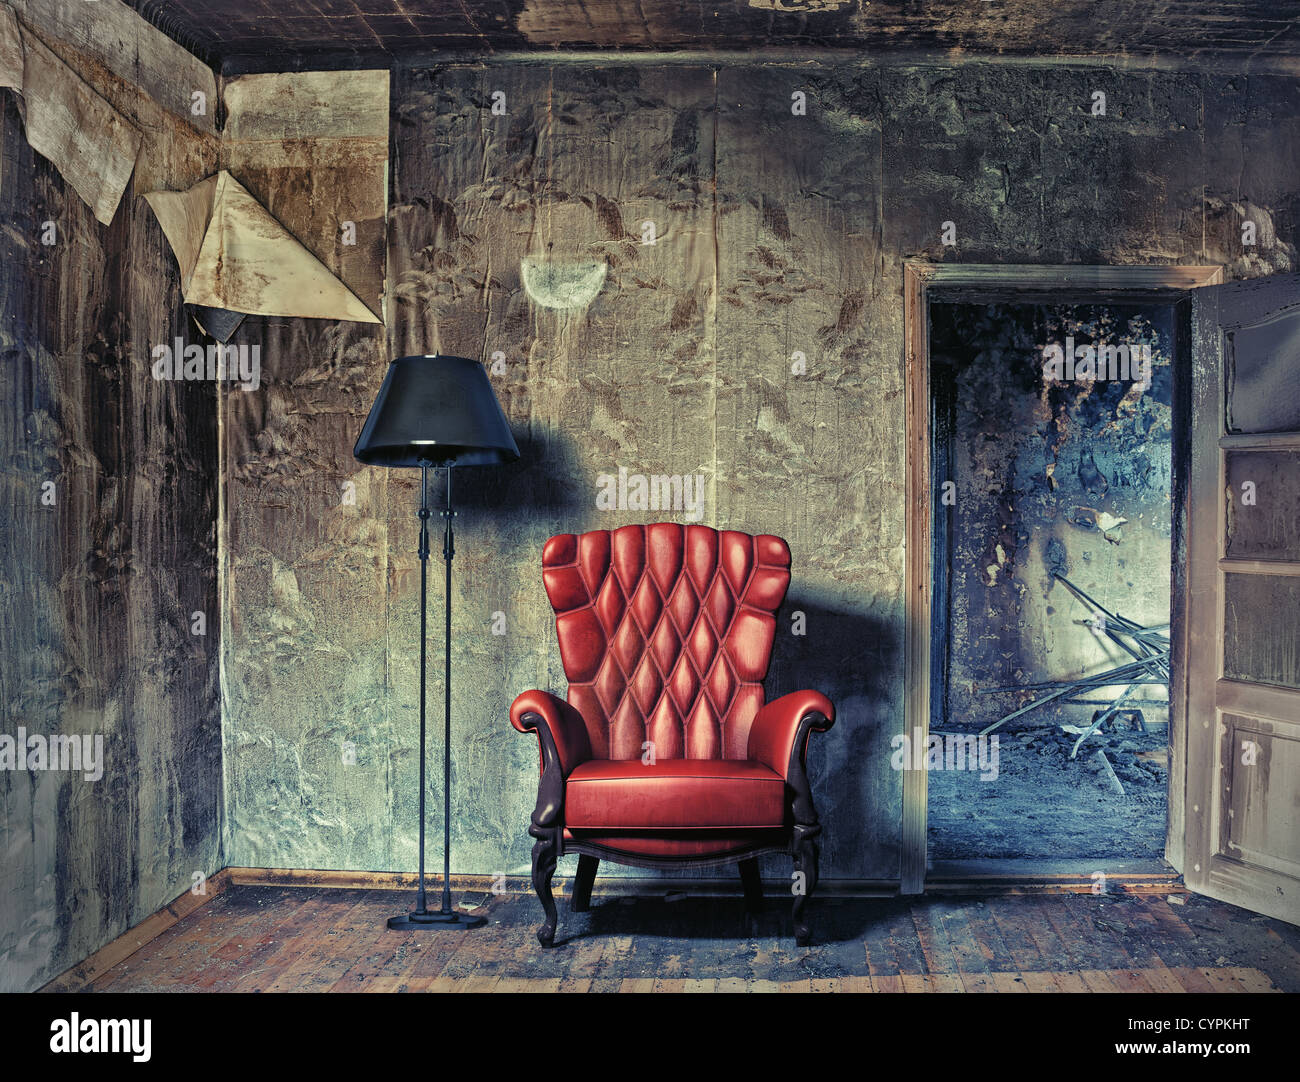 luxury armchair in grunge interior (Photo compilation. Photo and hand-drawing elements combined.) - Stock Image